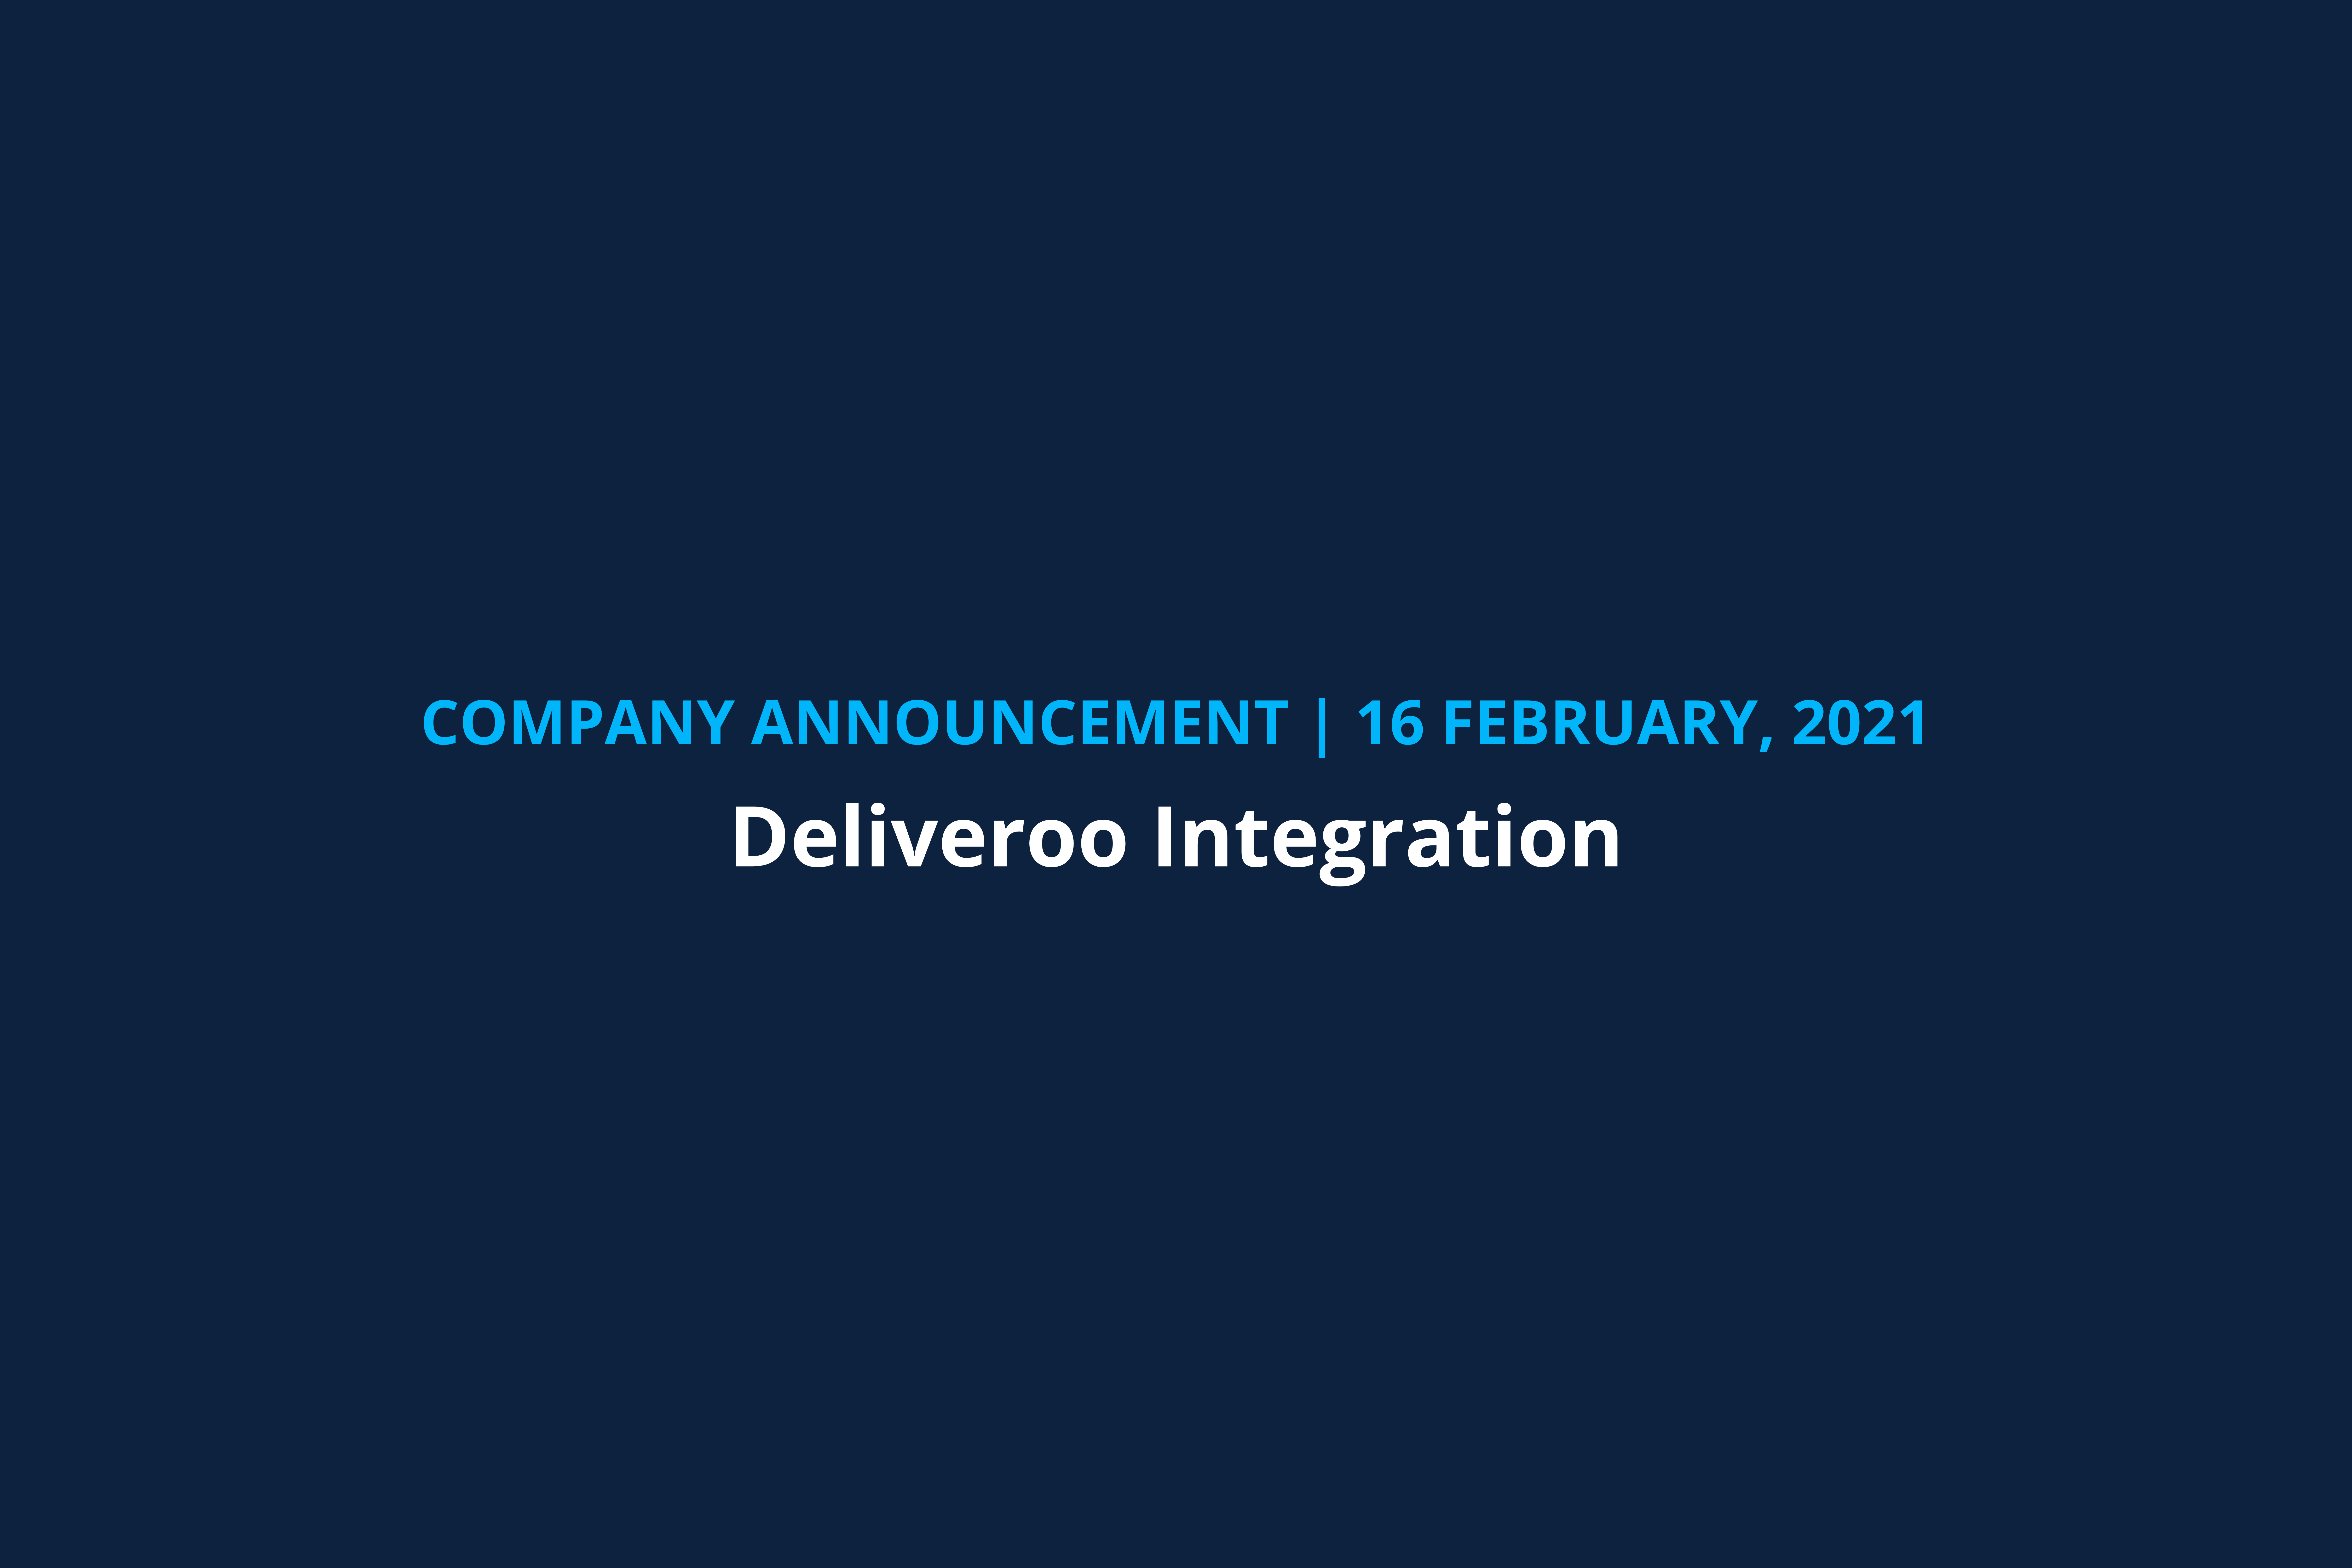 company announcement deliveroo